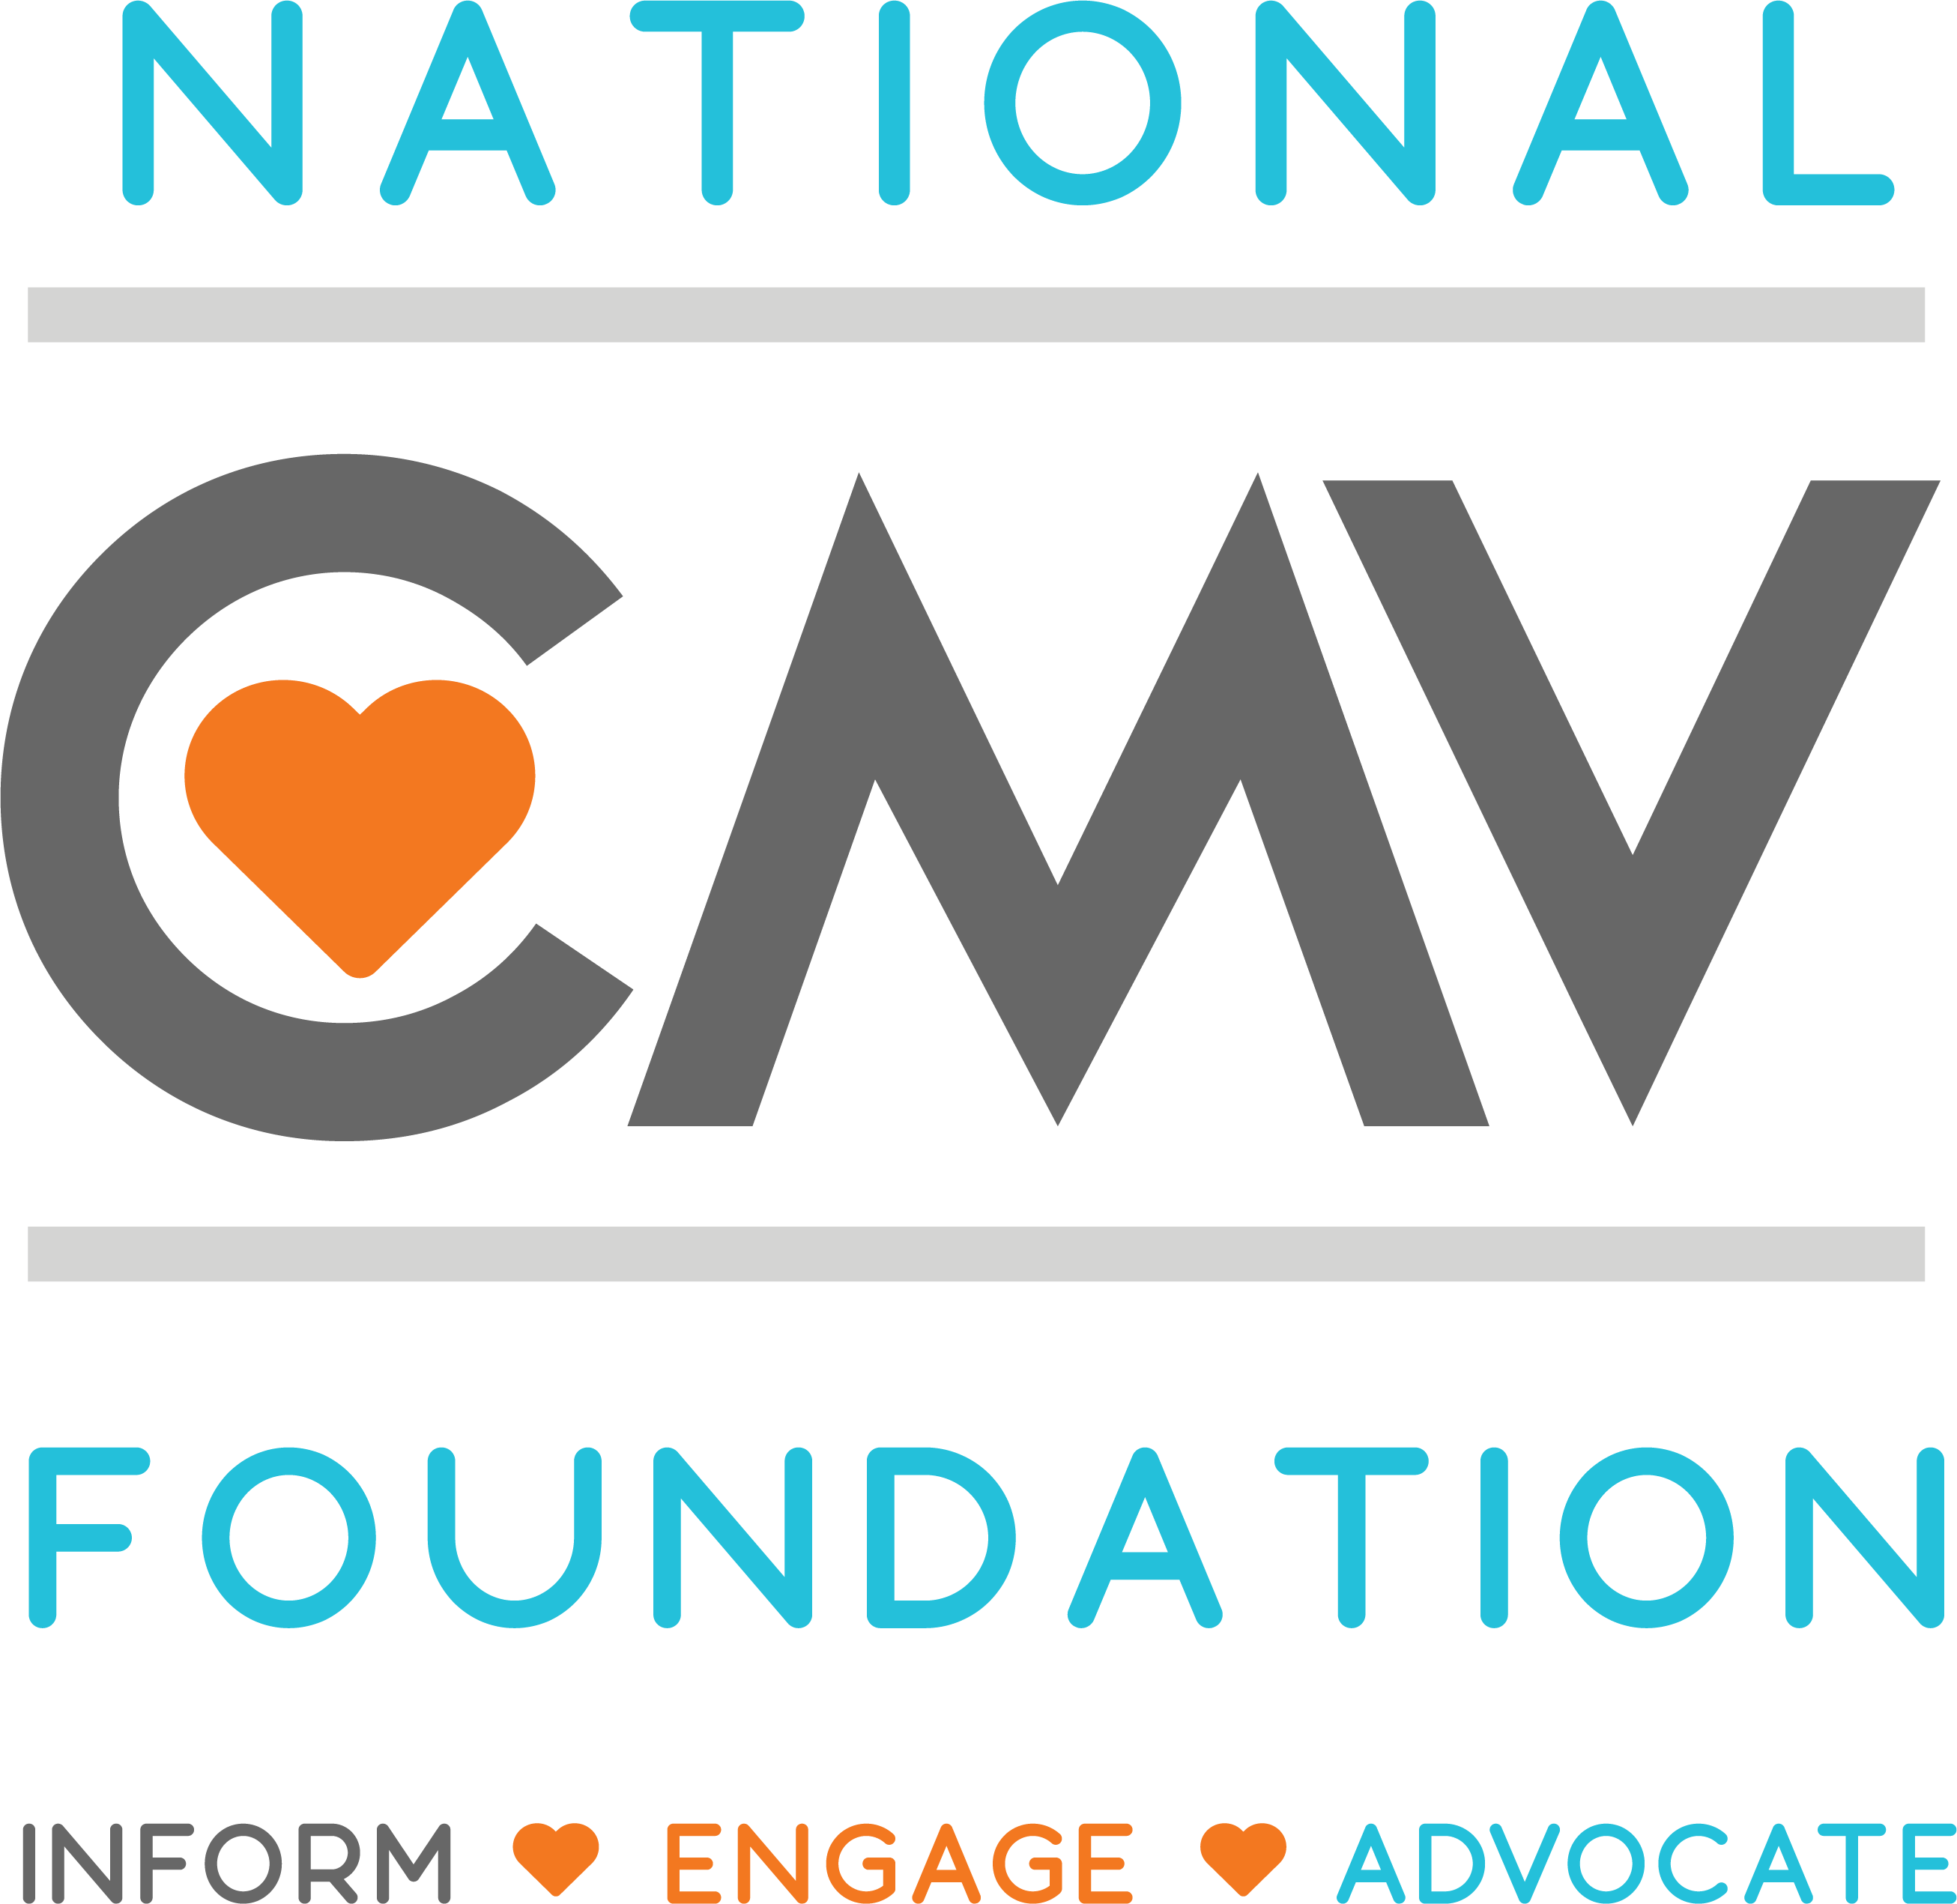 ​About the National CMV Foundation